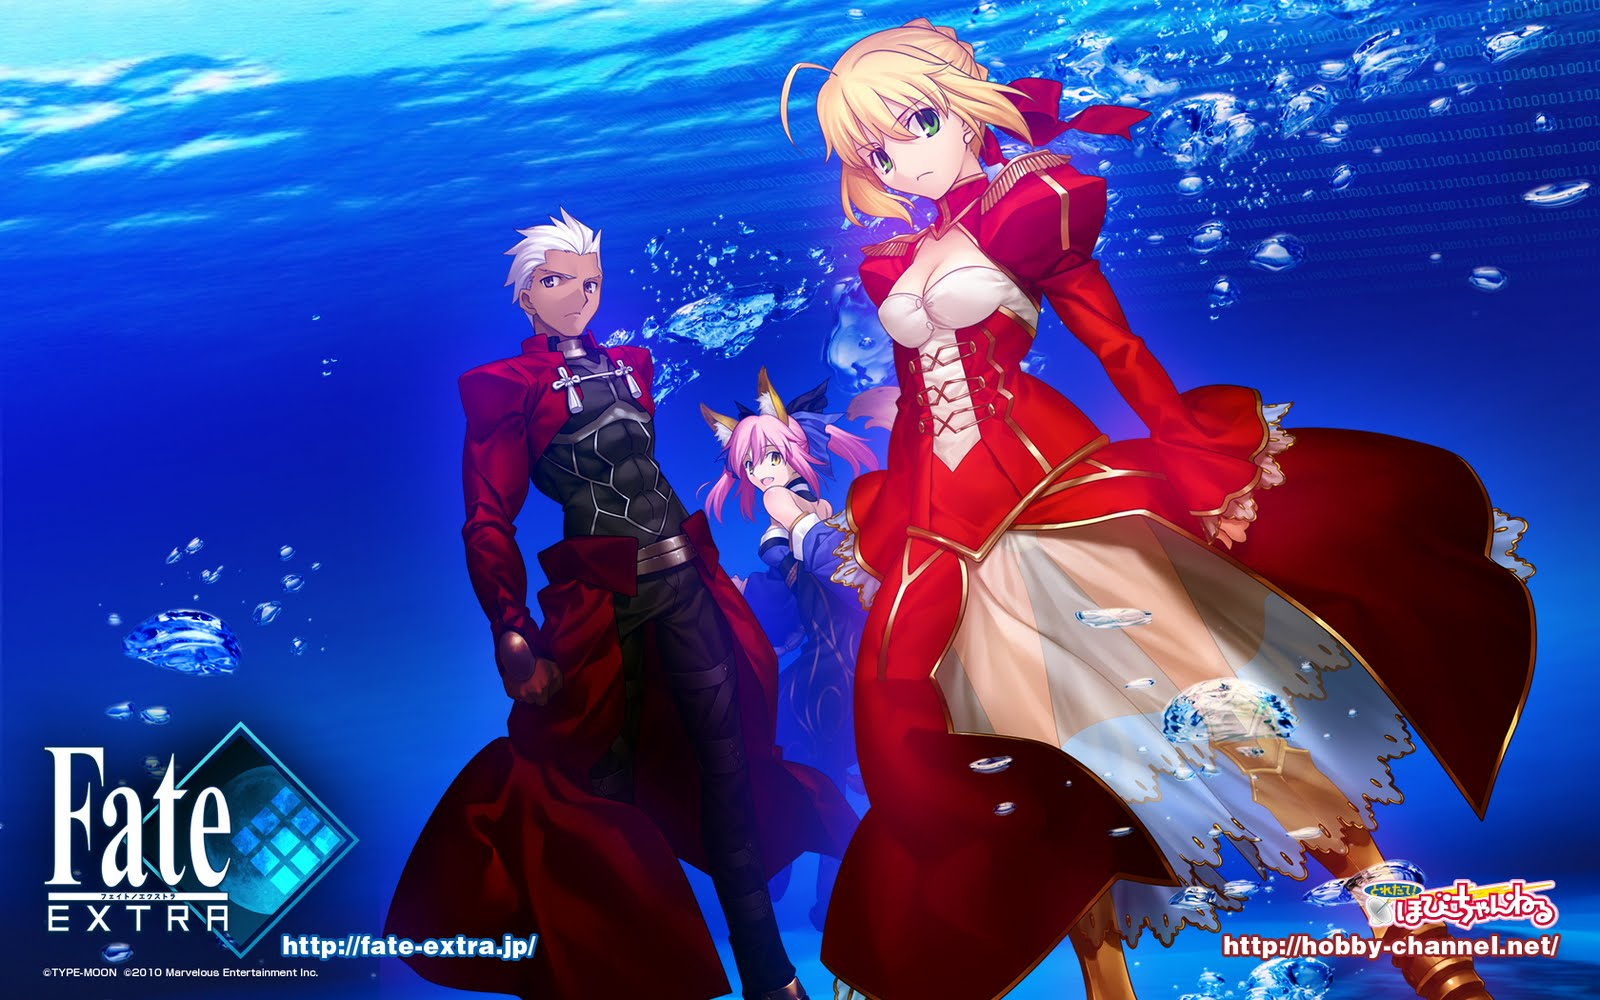 10 Game Anime Anime Polling  - Fate Extra - eyeofrin.wordpress